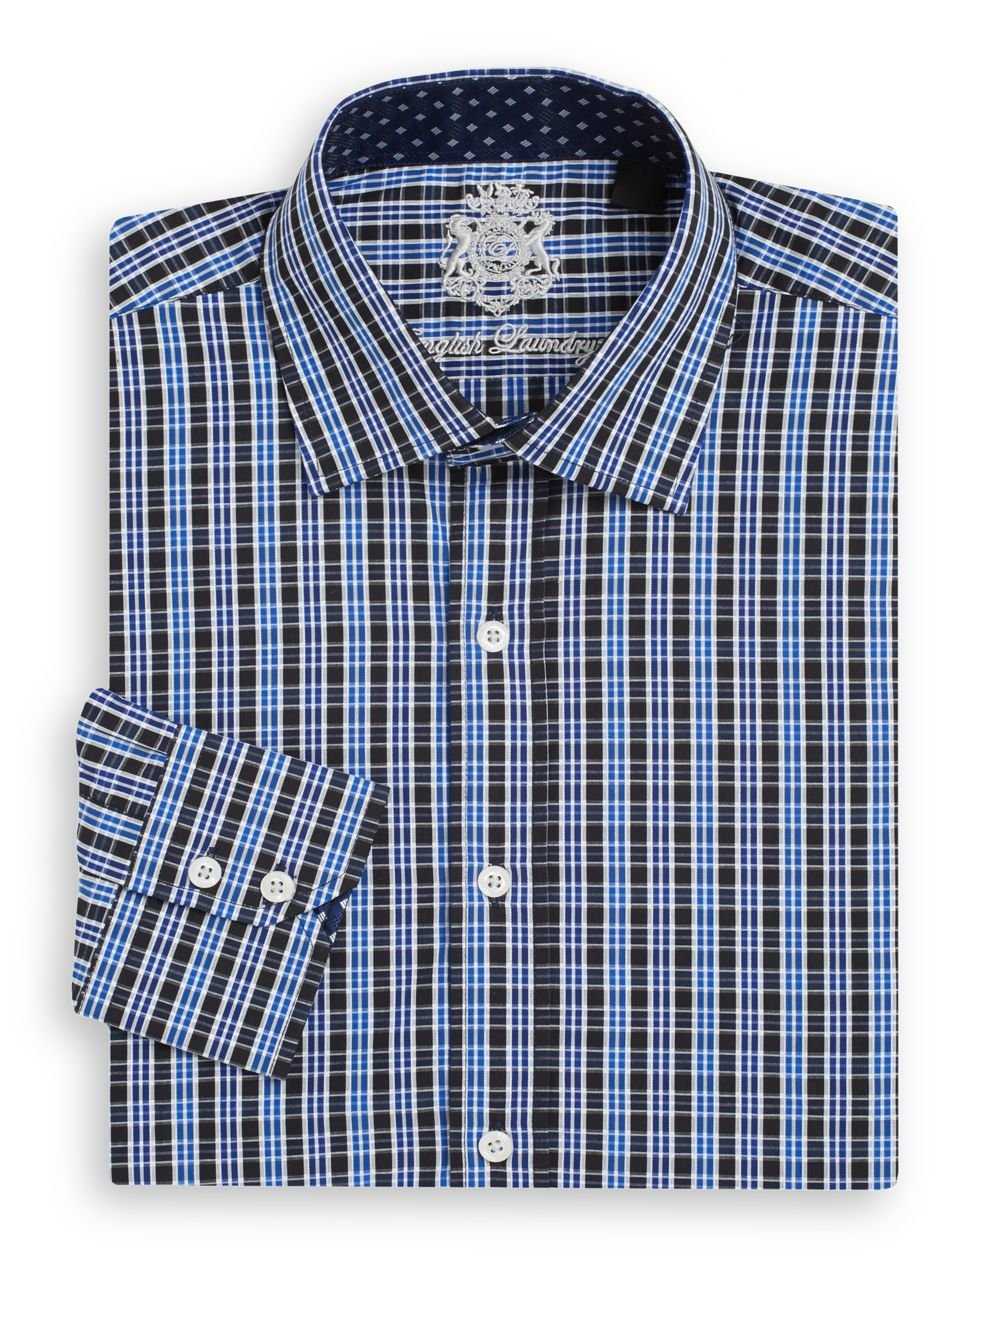 English Laundry Regular Fit Plaid Cotton Dress Shirt In